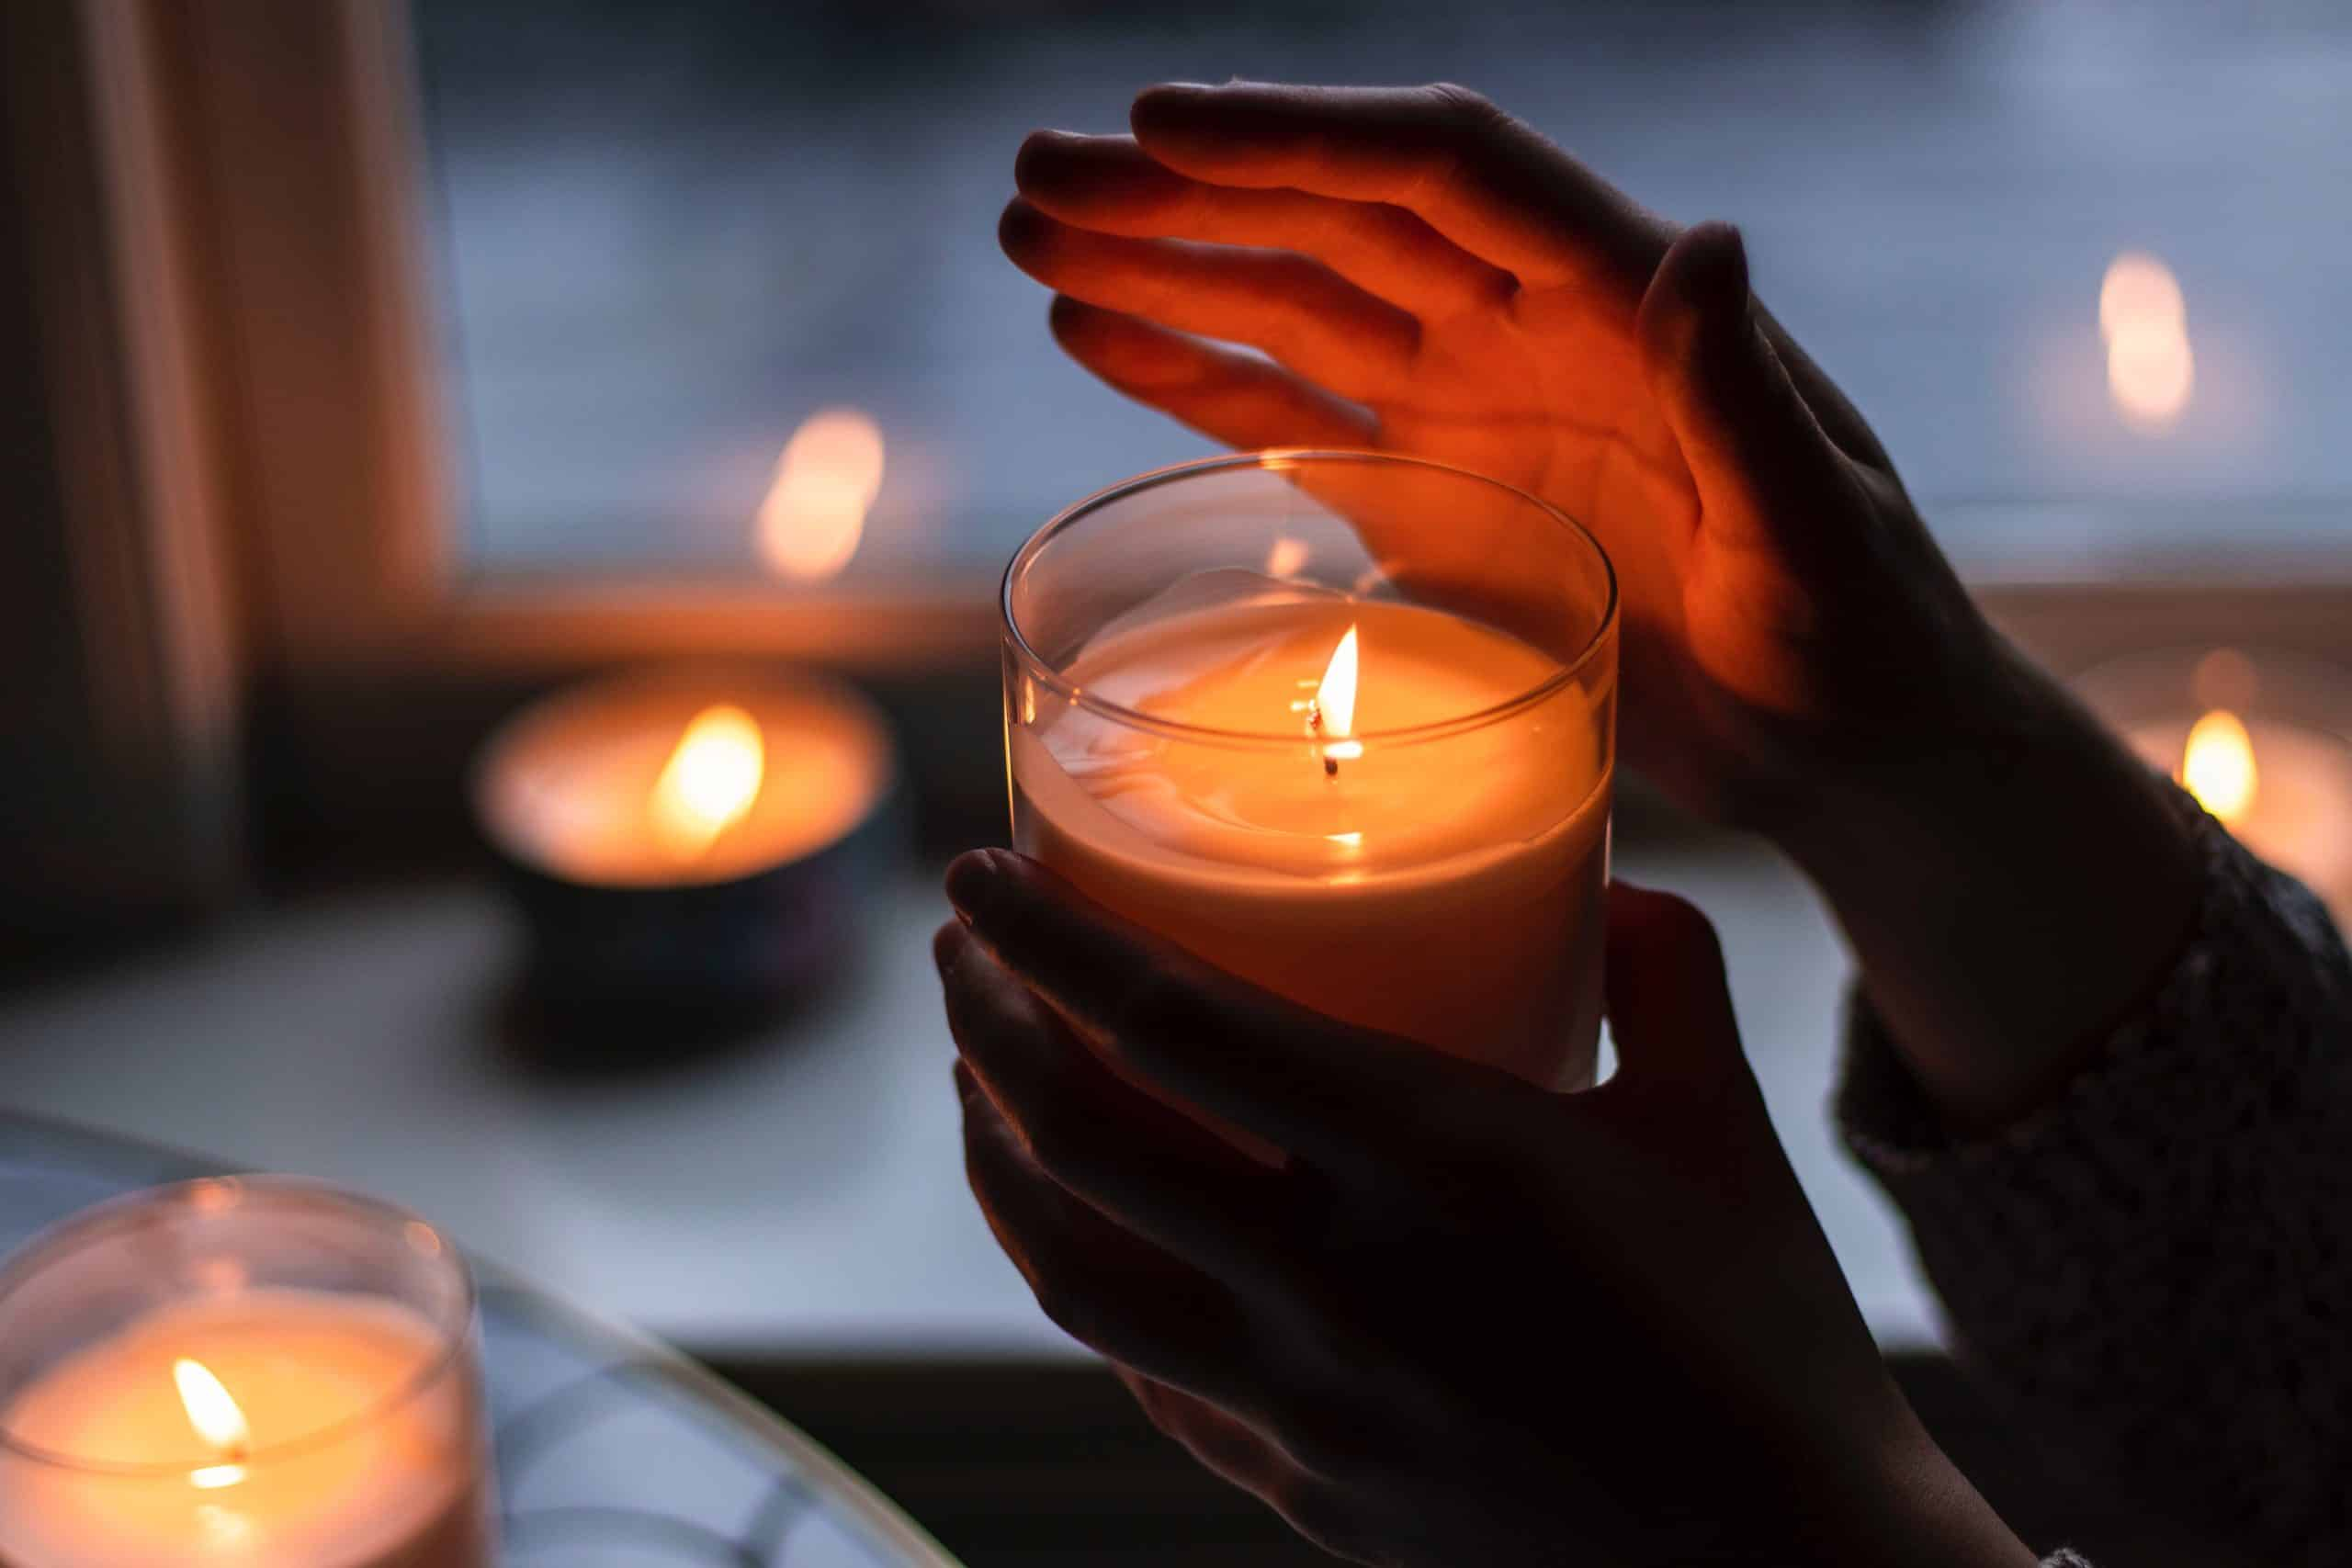 The Best Direct Sales Candle Companies For 2021